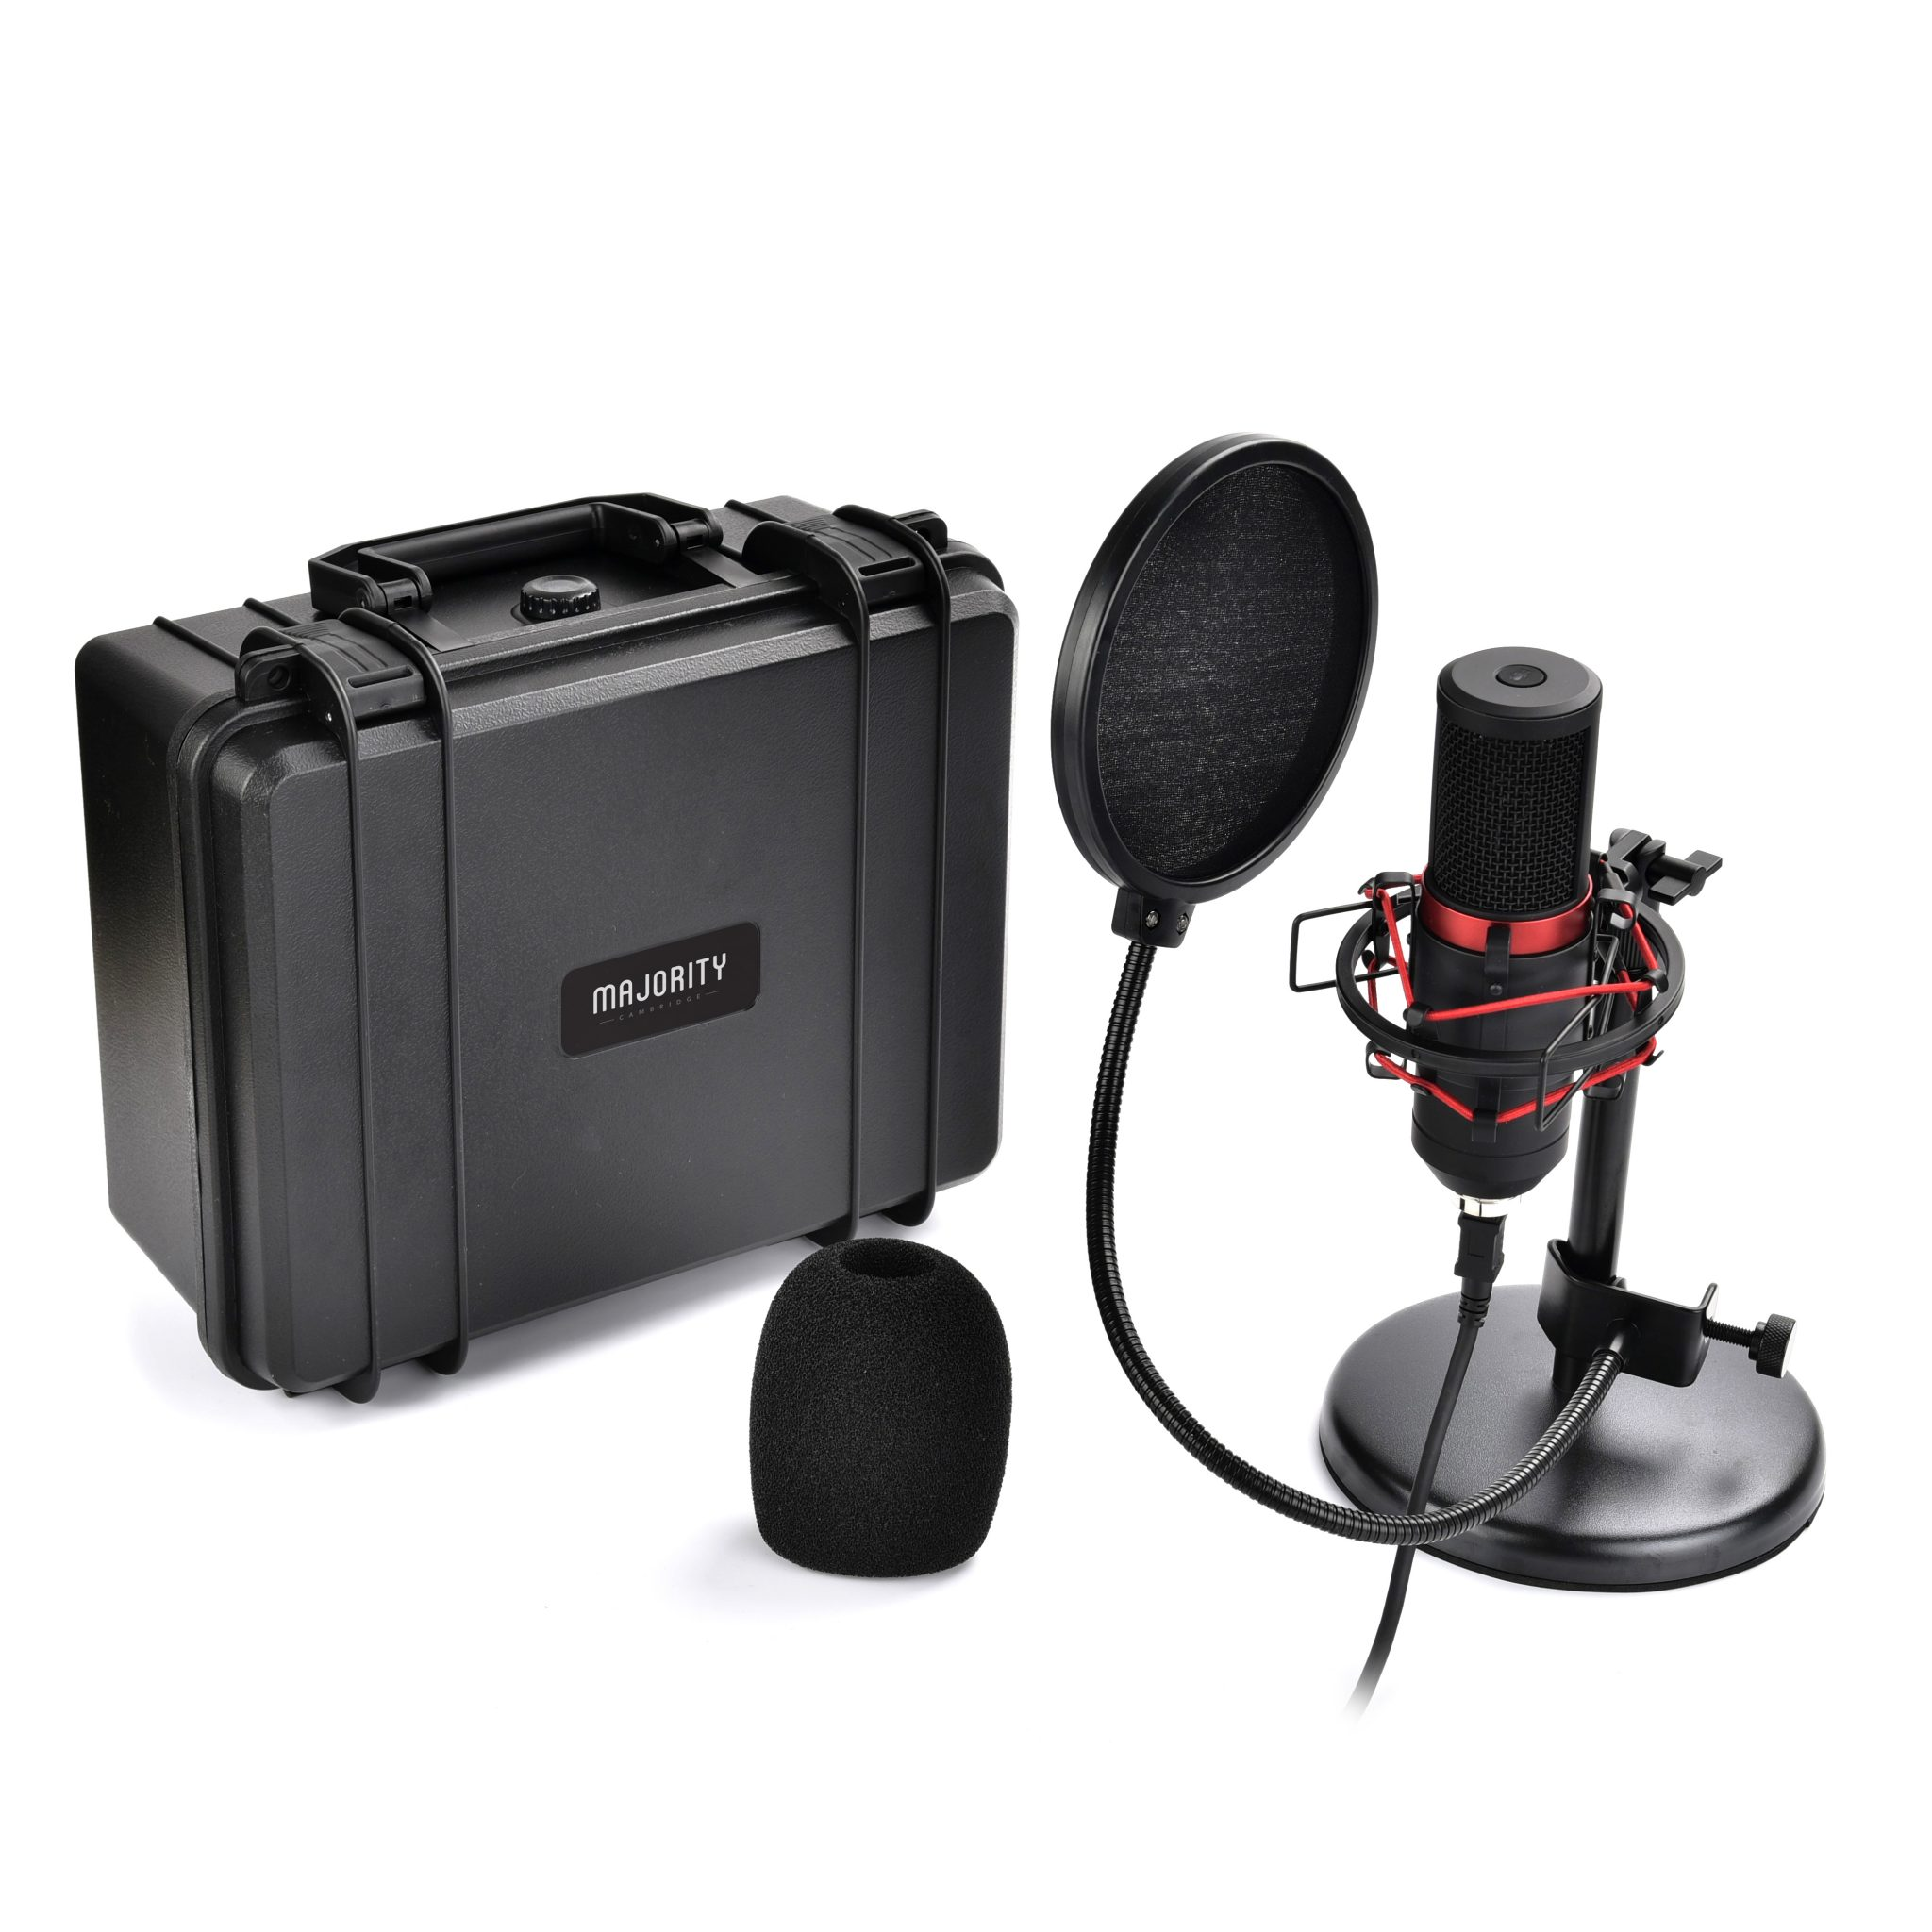 USB Microphone - RS Pro Microphone with Stand